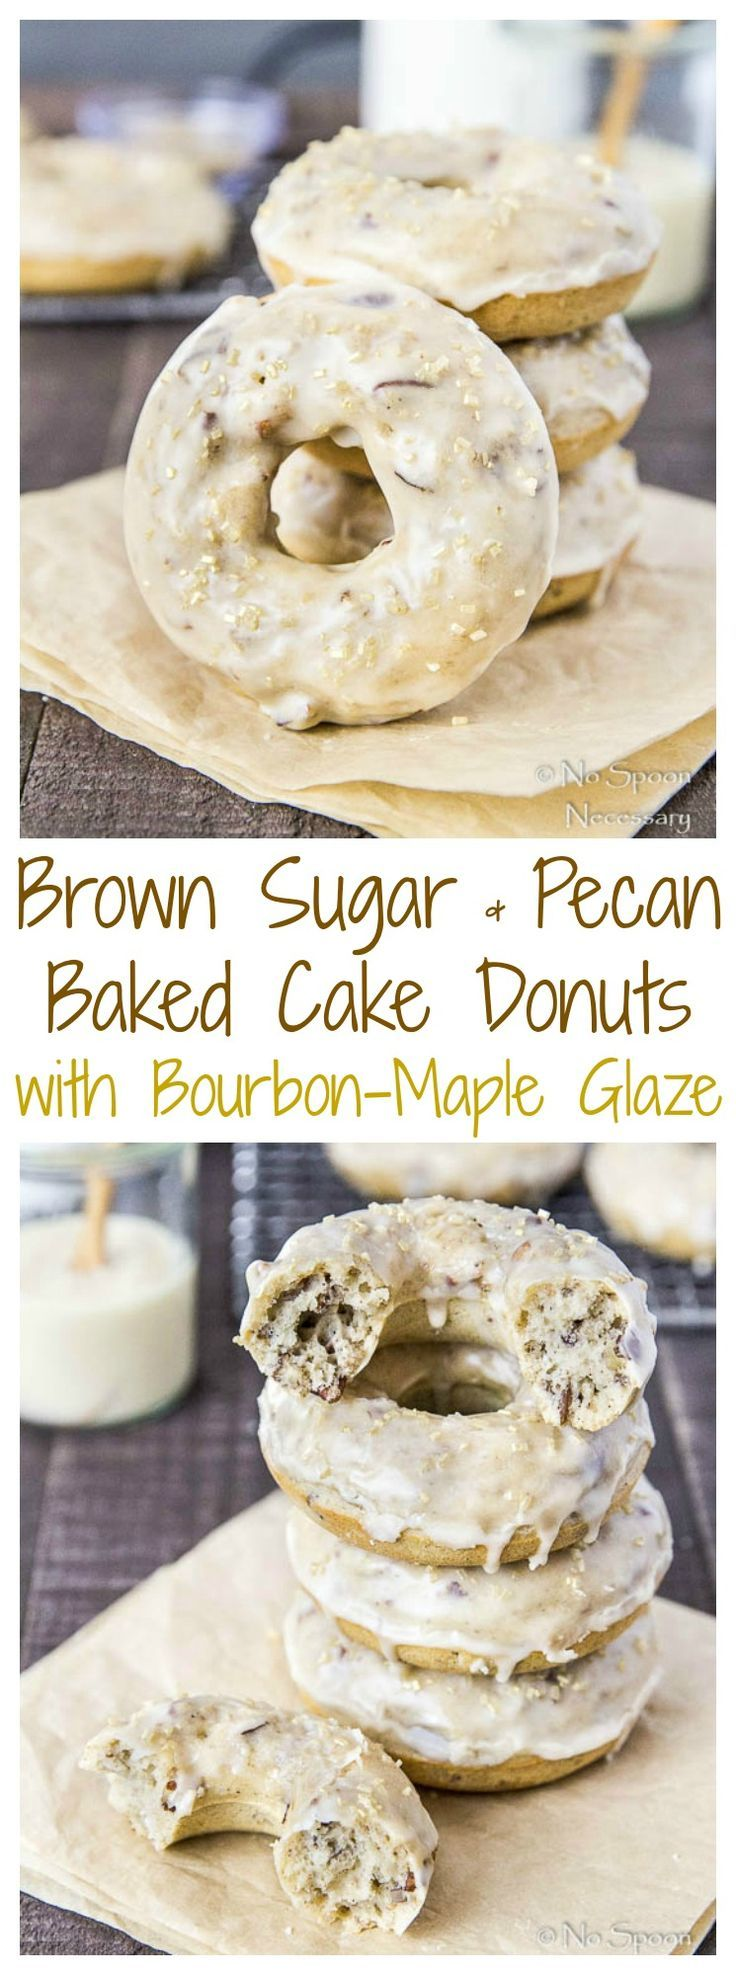 Brown Sugar & Pecan Baked Cake Donuts with Bourbon-Maple Glaze ...